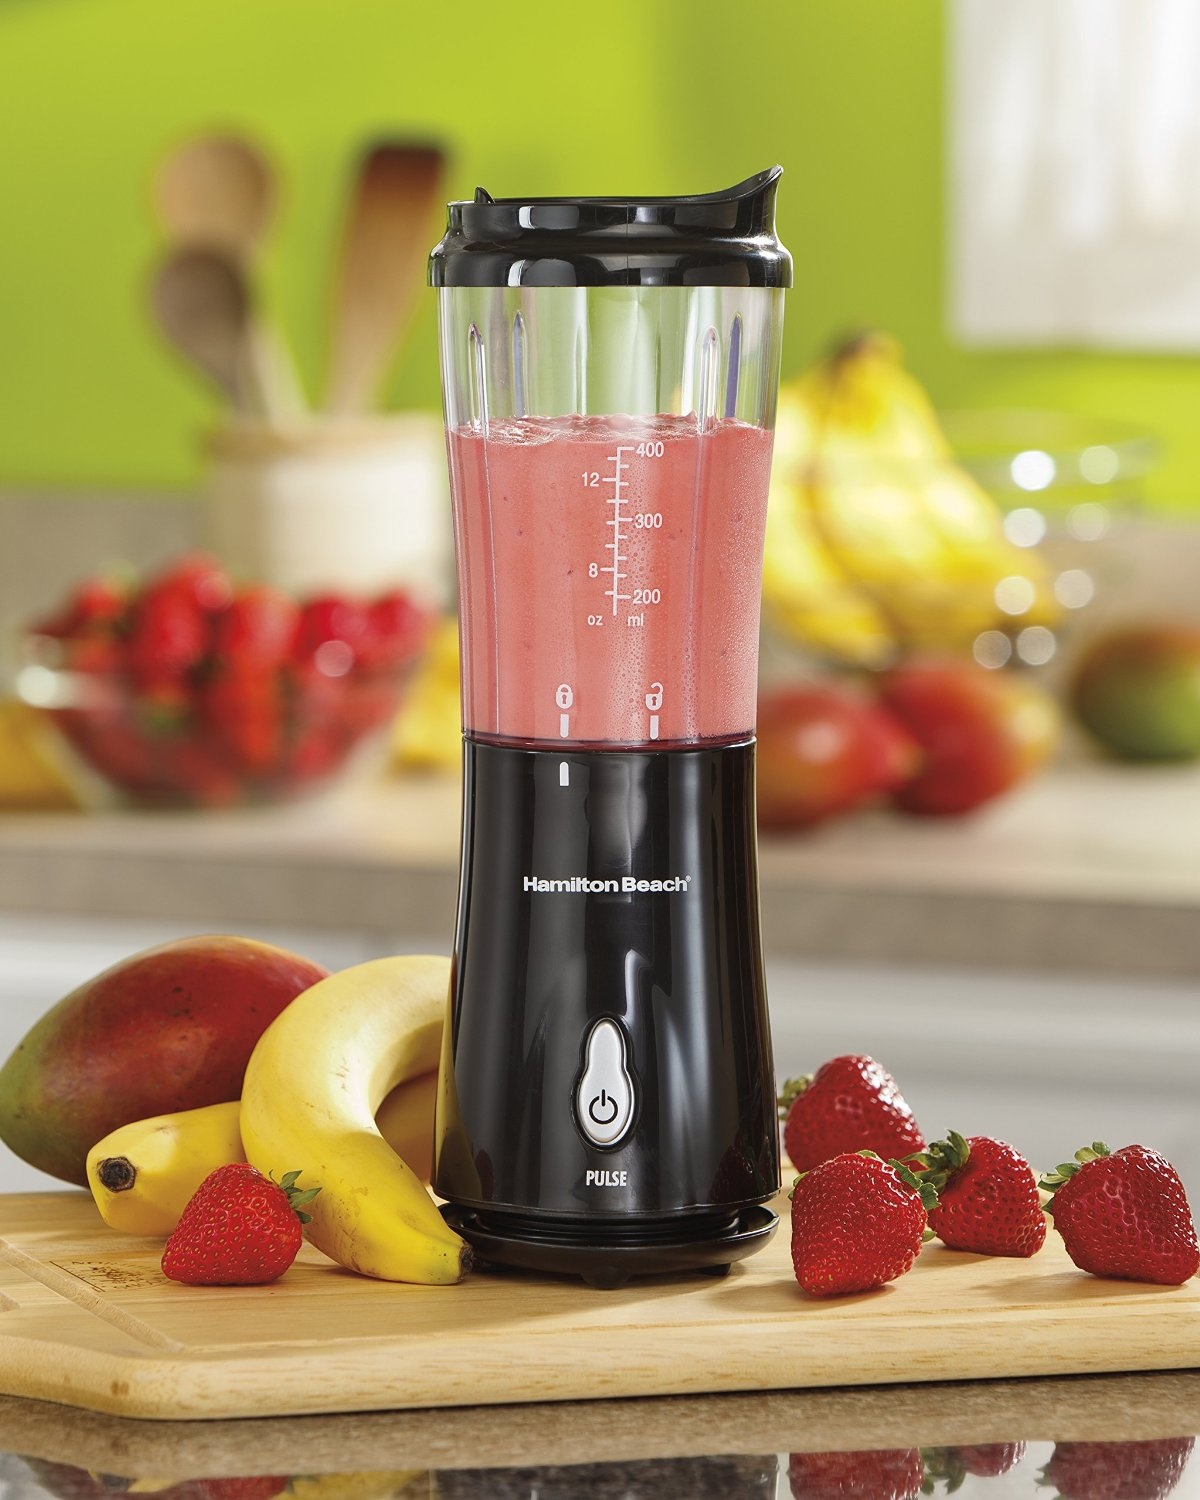 A black Hamilton Beach personal blender next to bananas and strawberries on a kitchen counter.